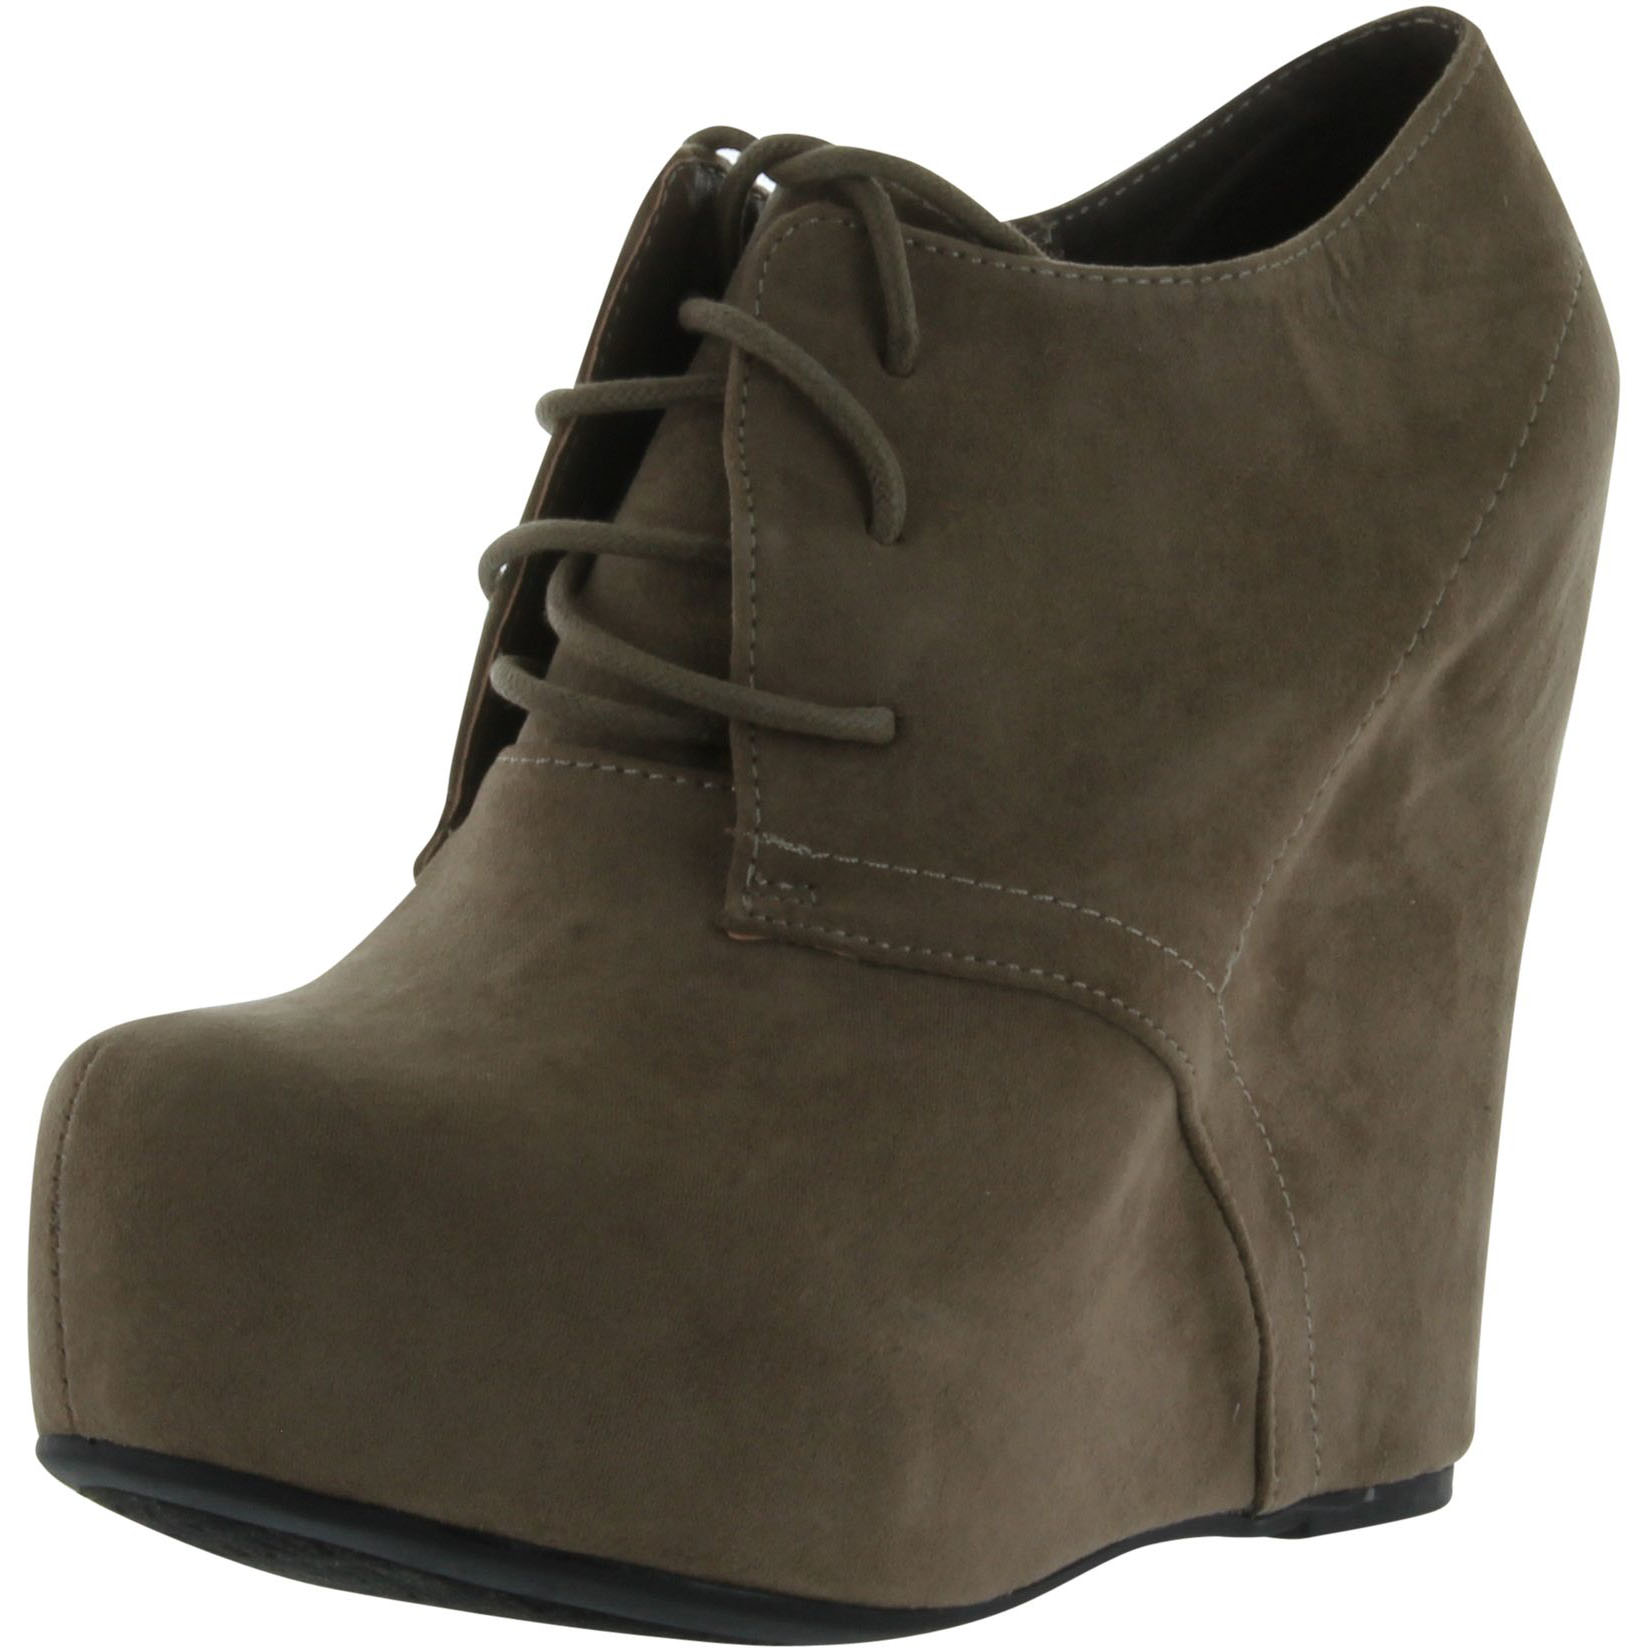 Women's Qupid Worthy-92A Lace Up High Heels Wedge Bootie